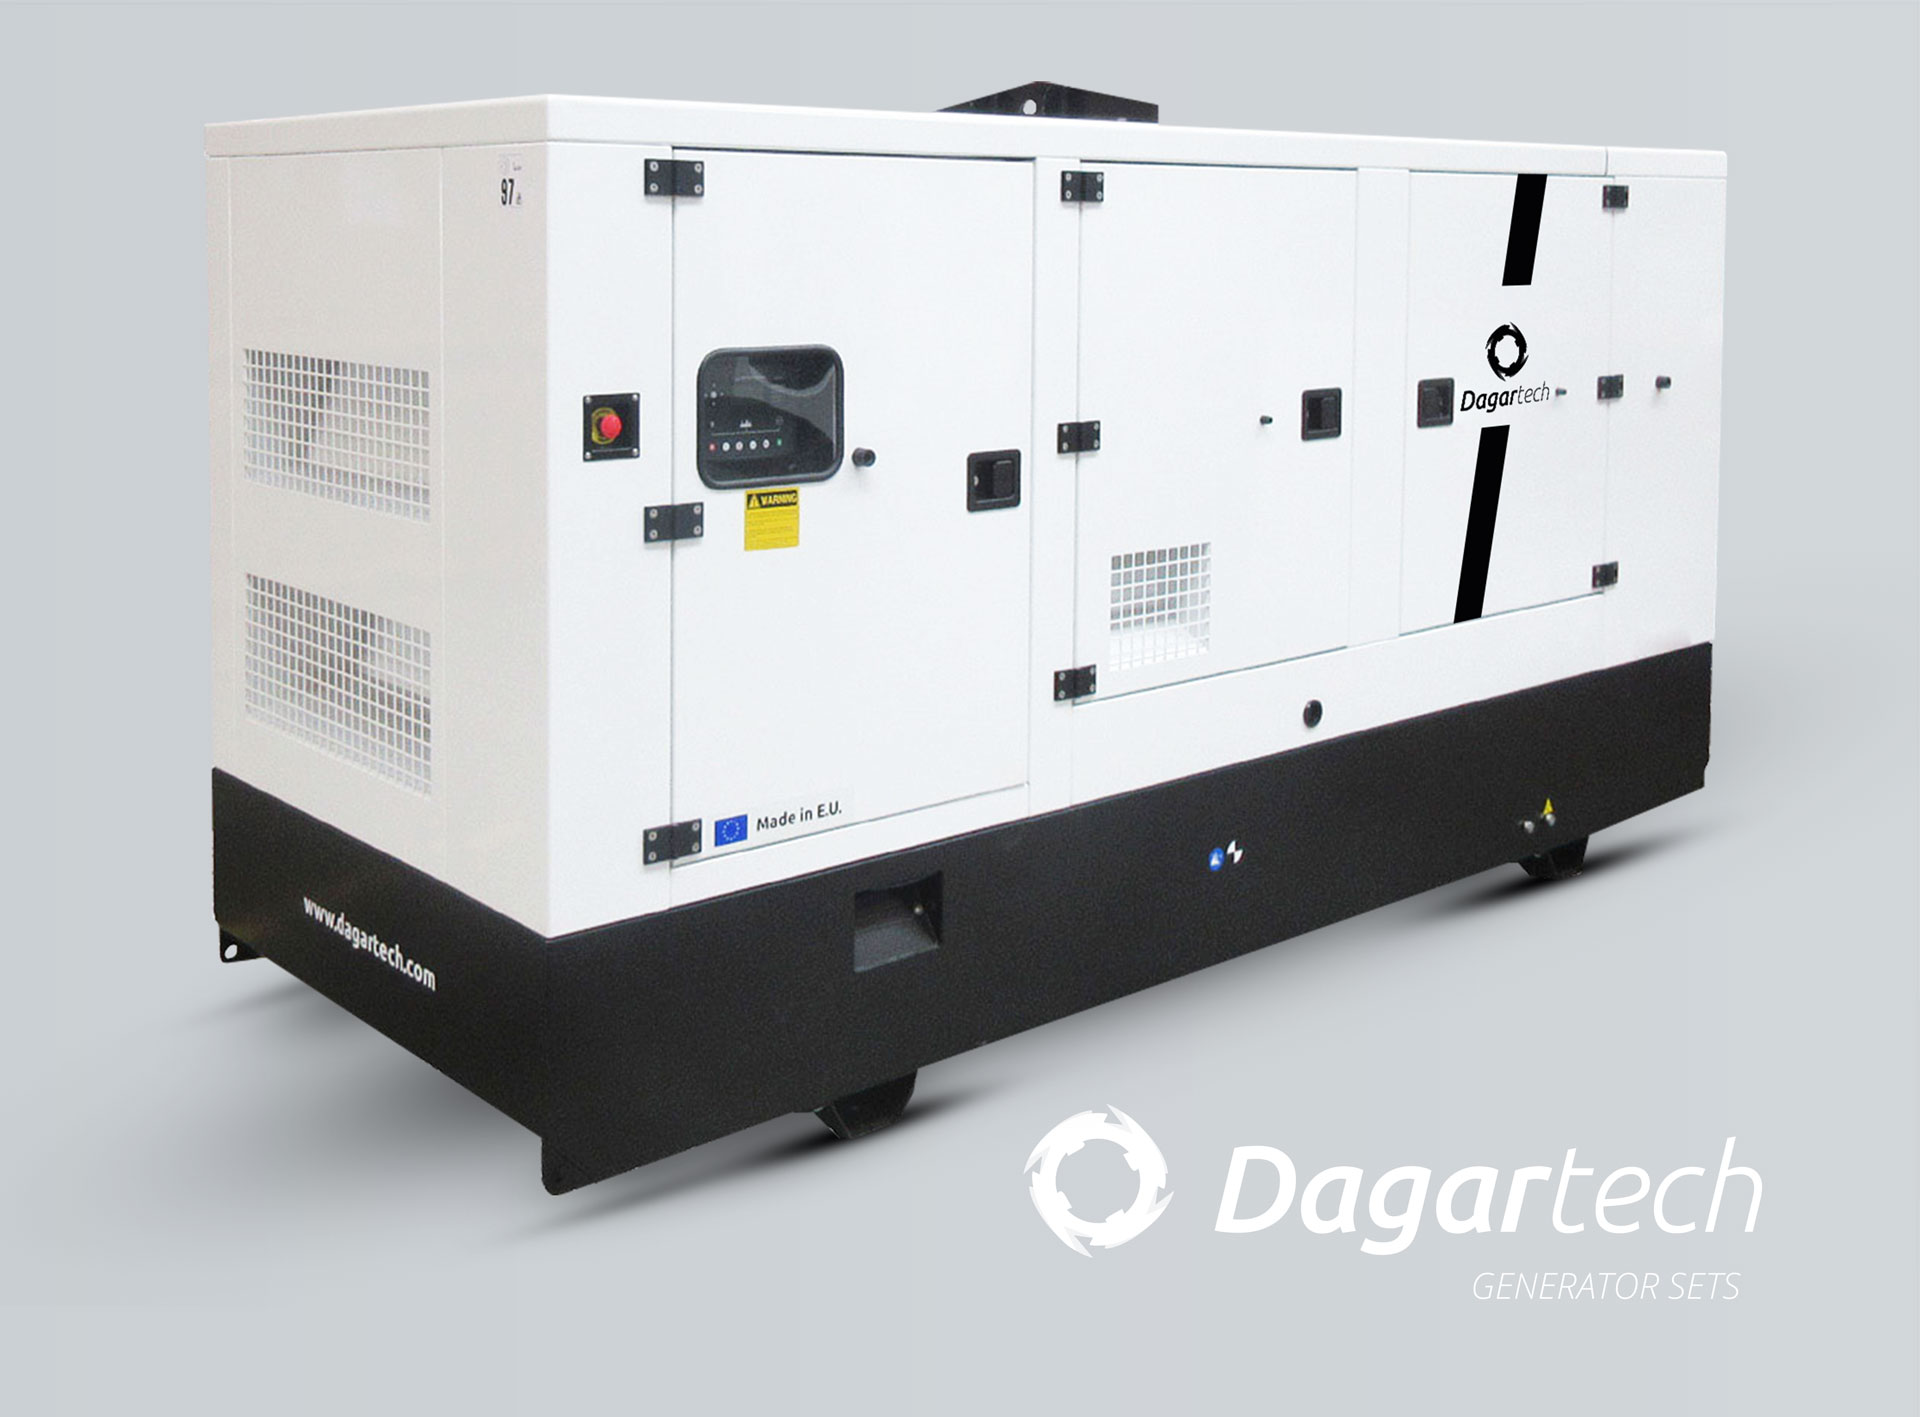 Dagartech Industrial Range soundproof sets for use in hospital sector applications with Kohler, Perkins, Iveco, Cummins, Doosan or Volvo water cooled engines